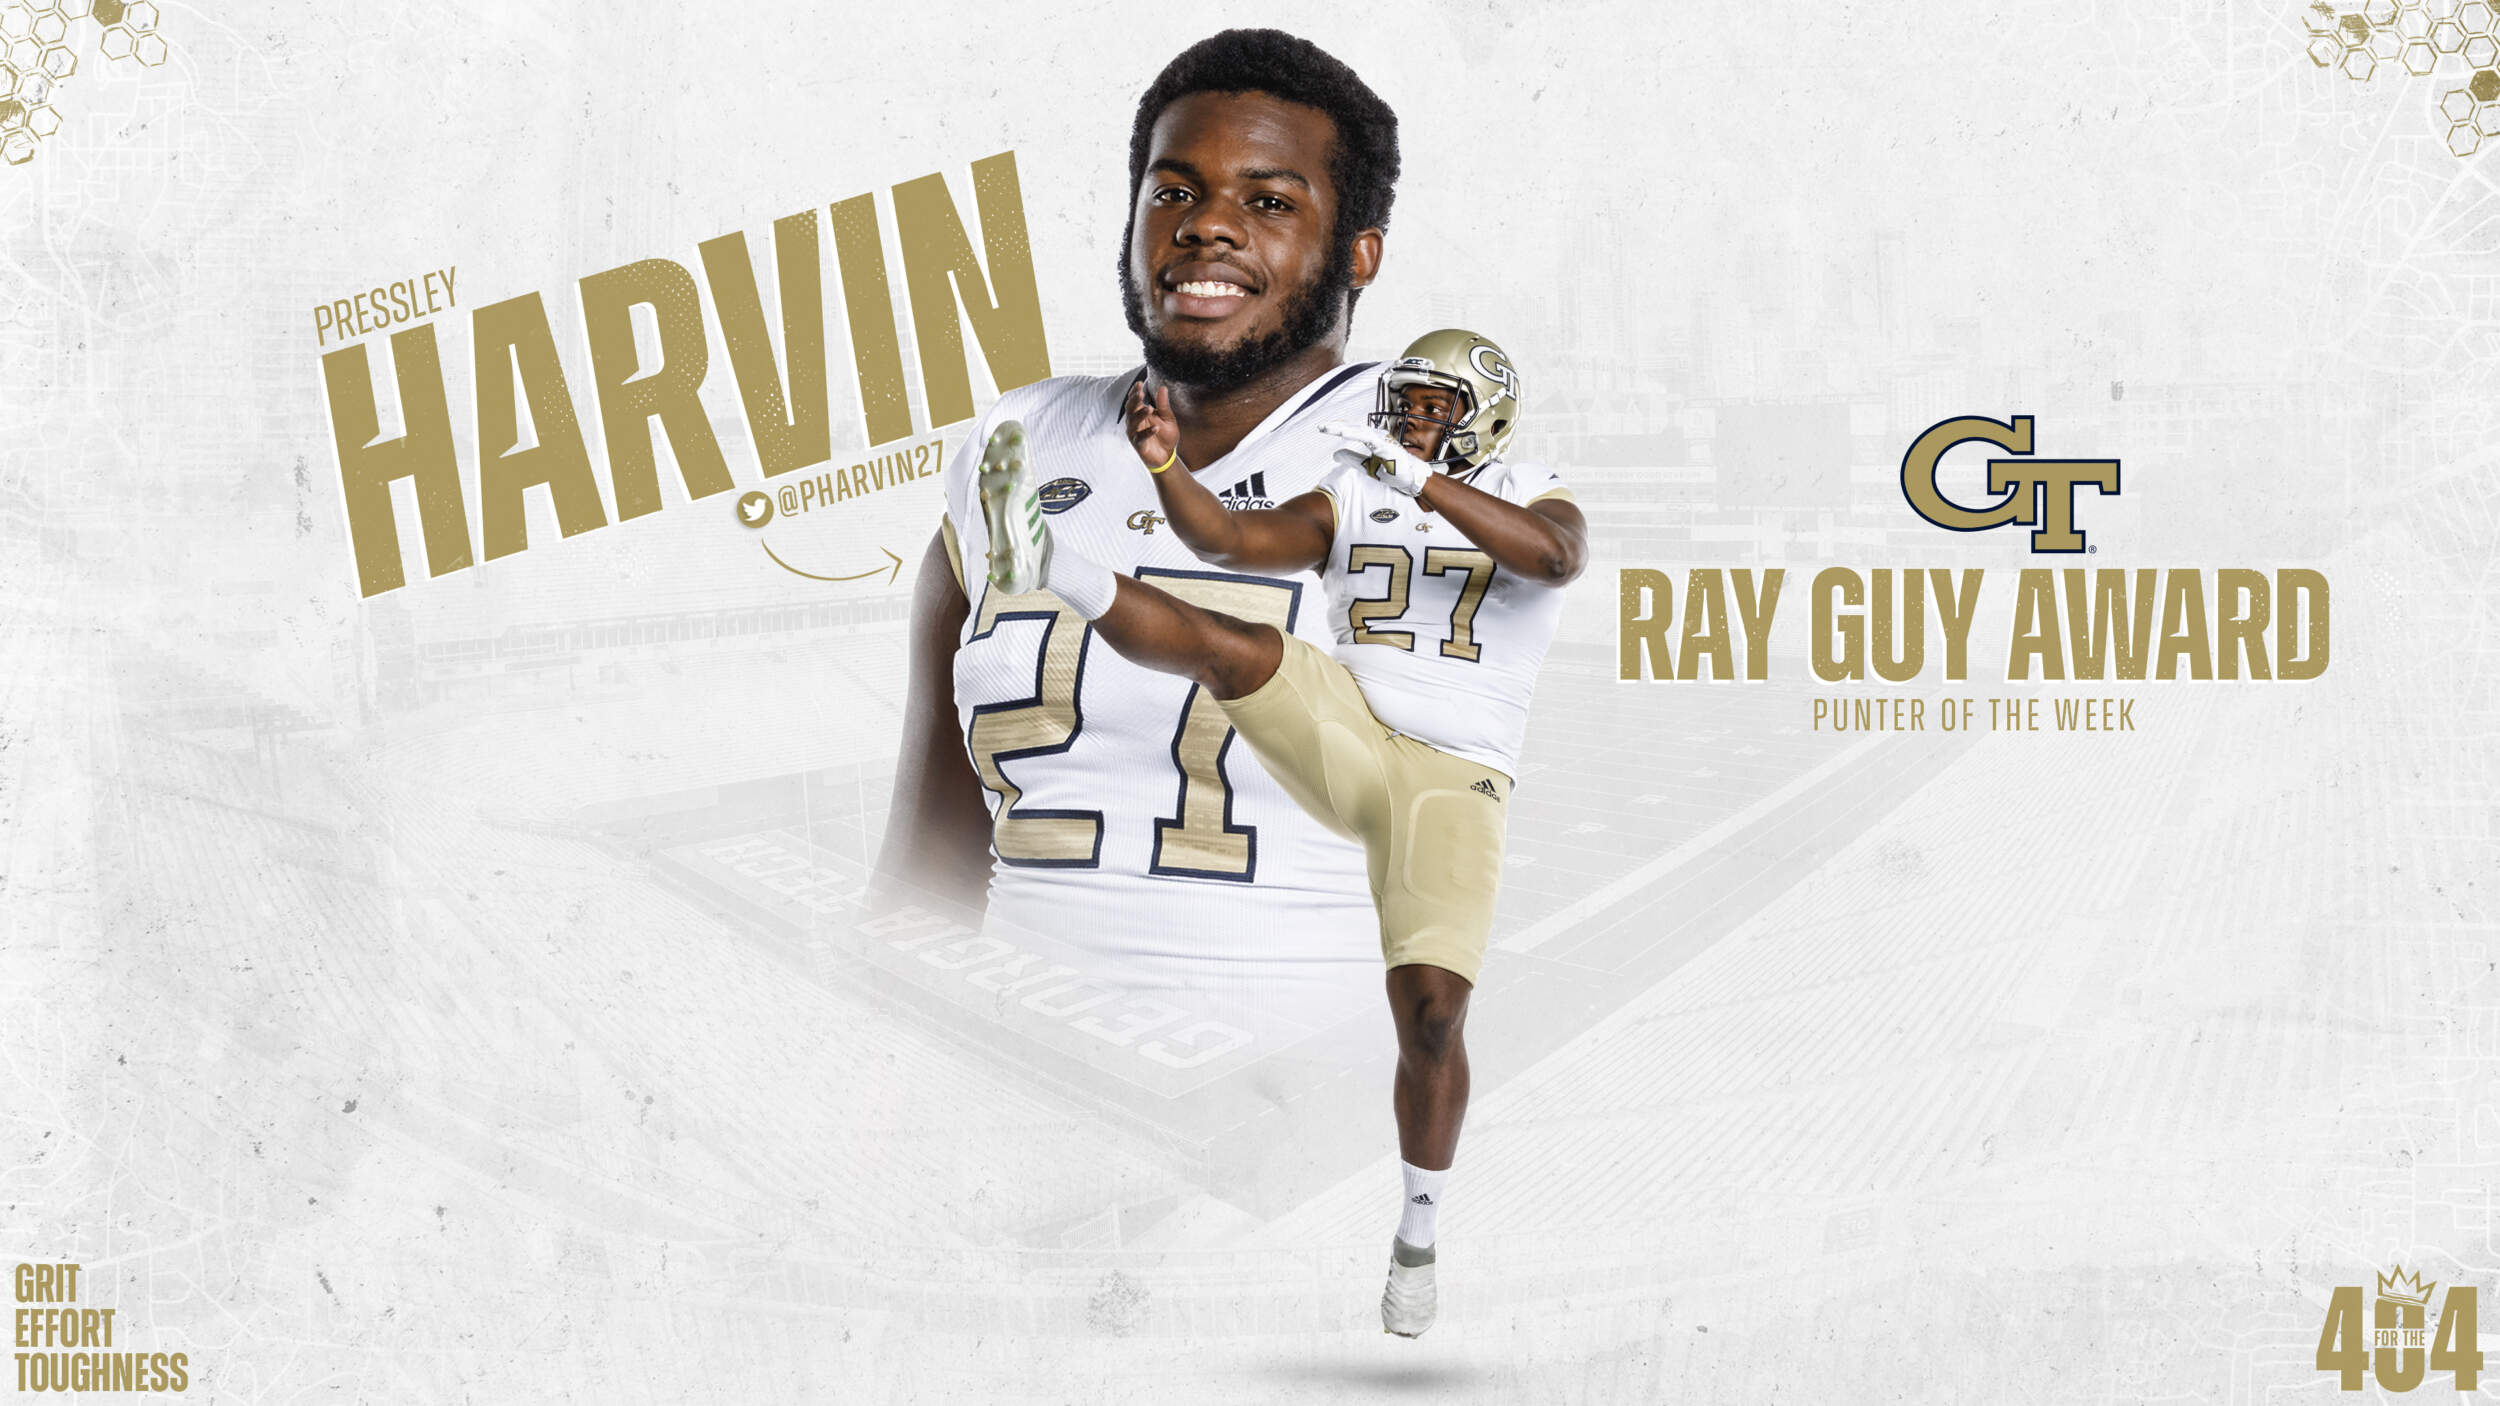 Harvin Named Ray Guy National Punter Of The Week Football Georgia Tech Yellow Jackets